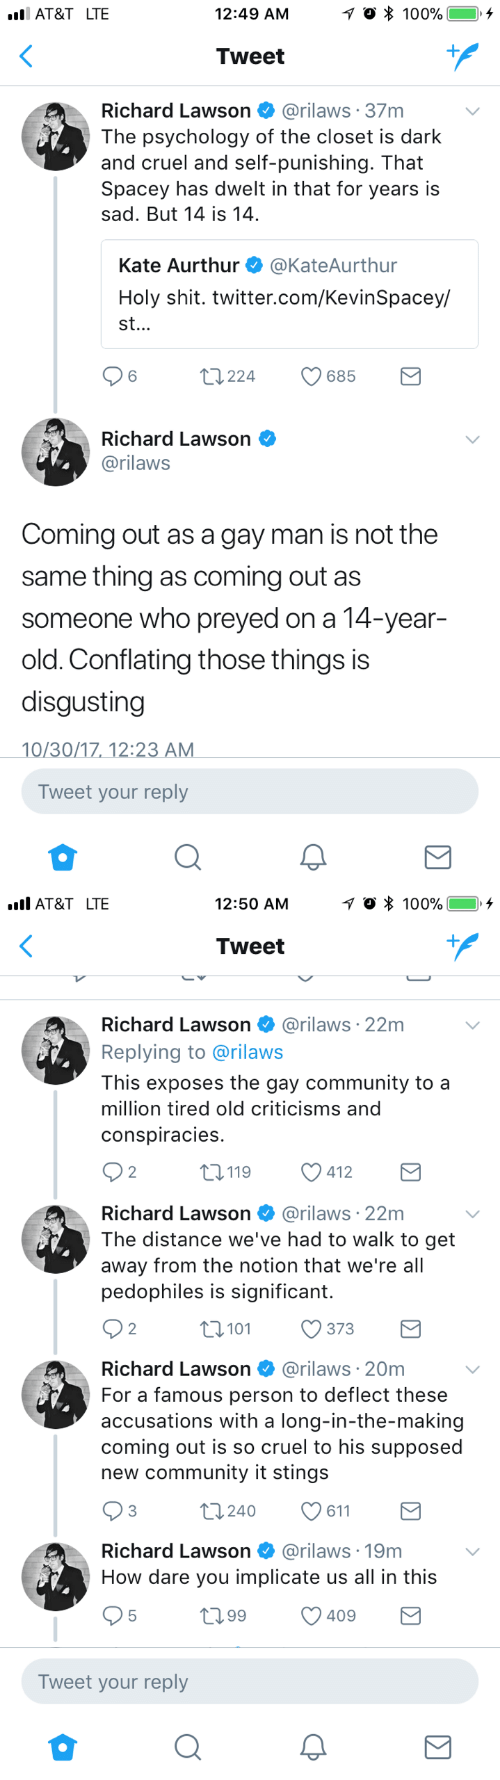 Community, Shit, and Twitter: AT&T LTE  12:49 AM  Tweet  Richard Lawson @rilaws 37m  The psychology of the closet is dark  and cruel and self-punishing. That  Spacey has dwelt in that for years is  sad. But 14 is 14  Kate Aurthur @KateAurthur  Holy shit. twitter.com/KevinSpacey/  st.  6  t224  685  Richard Lawson  @rilaws  Coming out as a gay man is not the  same thing as coming out as  someone who preyed on a 14-year-  old. Conflating those things is  disgusting  0/30/1712:2  Tweet your reply   AT&T LTE  12:50 AM  Tweet  Richard Lawson @rilaws·22m  Replying to @rilaws  This exposes the gay community to a  million tired old criticisms and  conspiracies  2  0119 412  Richard Lawson @rilaws 22m  The distance we've had to walk to get  away from the notion that we're all  pedophiles is significant.  2  0101373  Richard Lawson @rilaws 20m  For a famous person to deflect these  accusations with a long-in-the-making  coming out is so cruel to his supposed  new community it stings  3  t0240 611  Richard Lawson  @rilaws·19m  How dare you implicate us all in this  t099 409  Tweet your reply